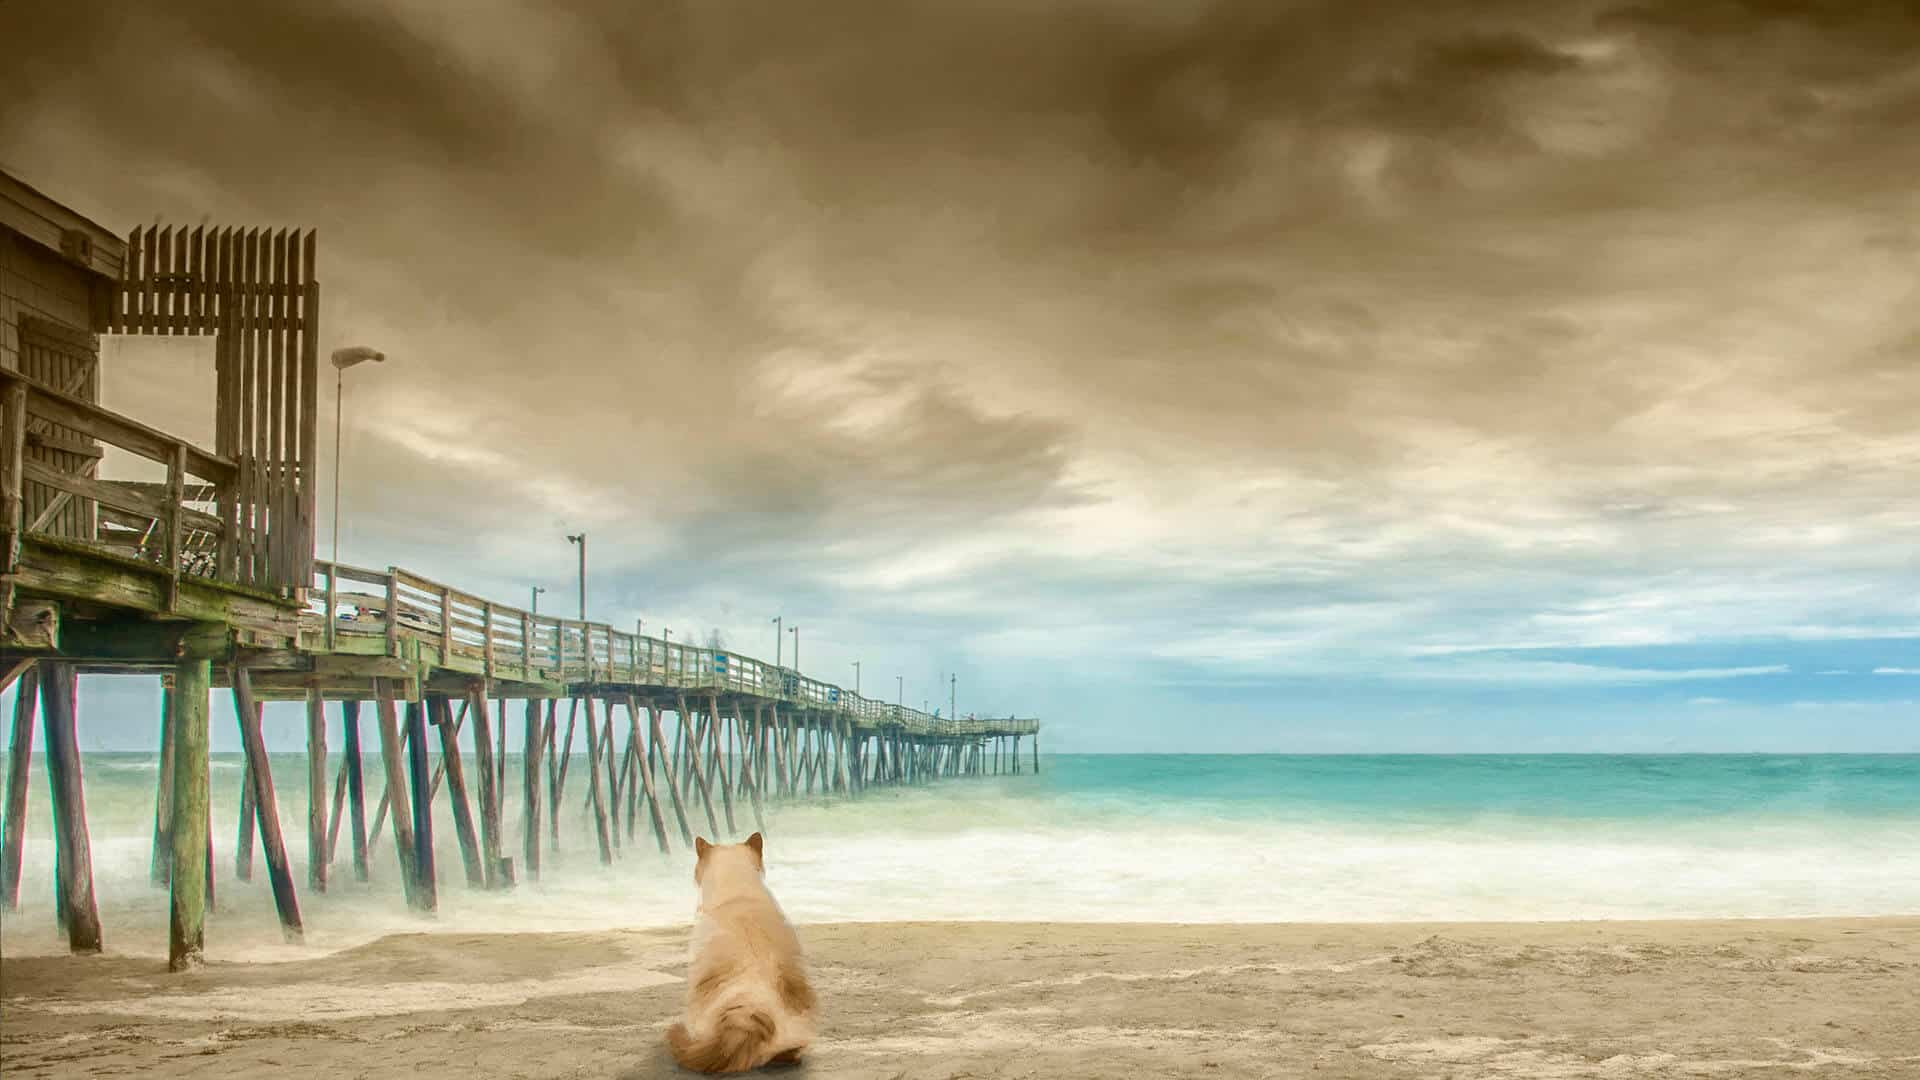 Commercial art of cat sitting on North Carolina beach by DIG53